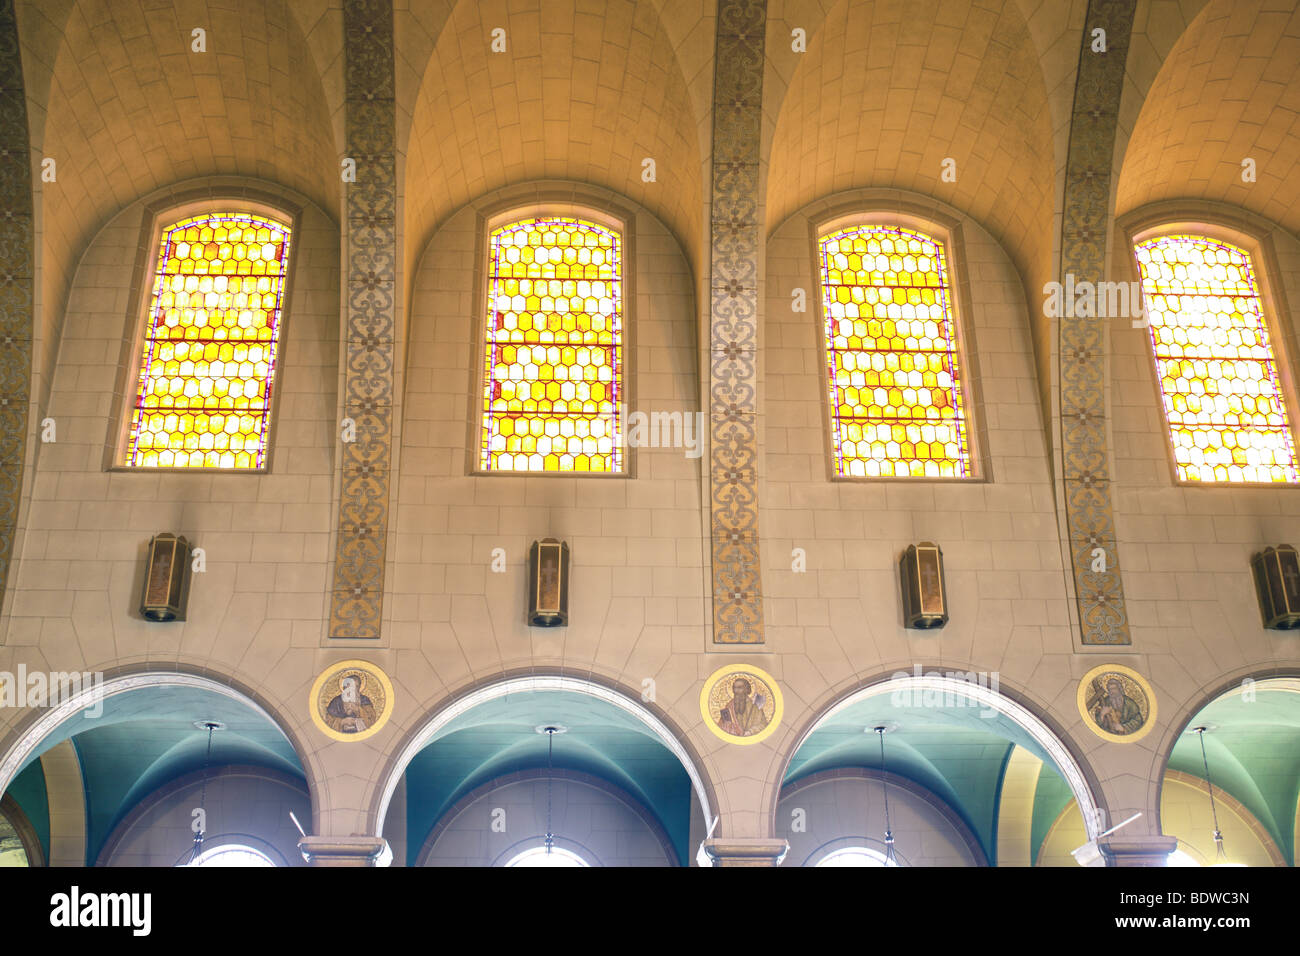 Arcade of colorful glass windows in cathedral - Stock Image